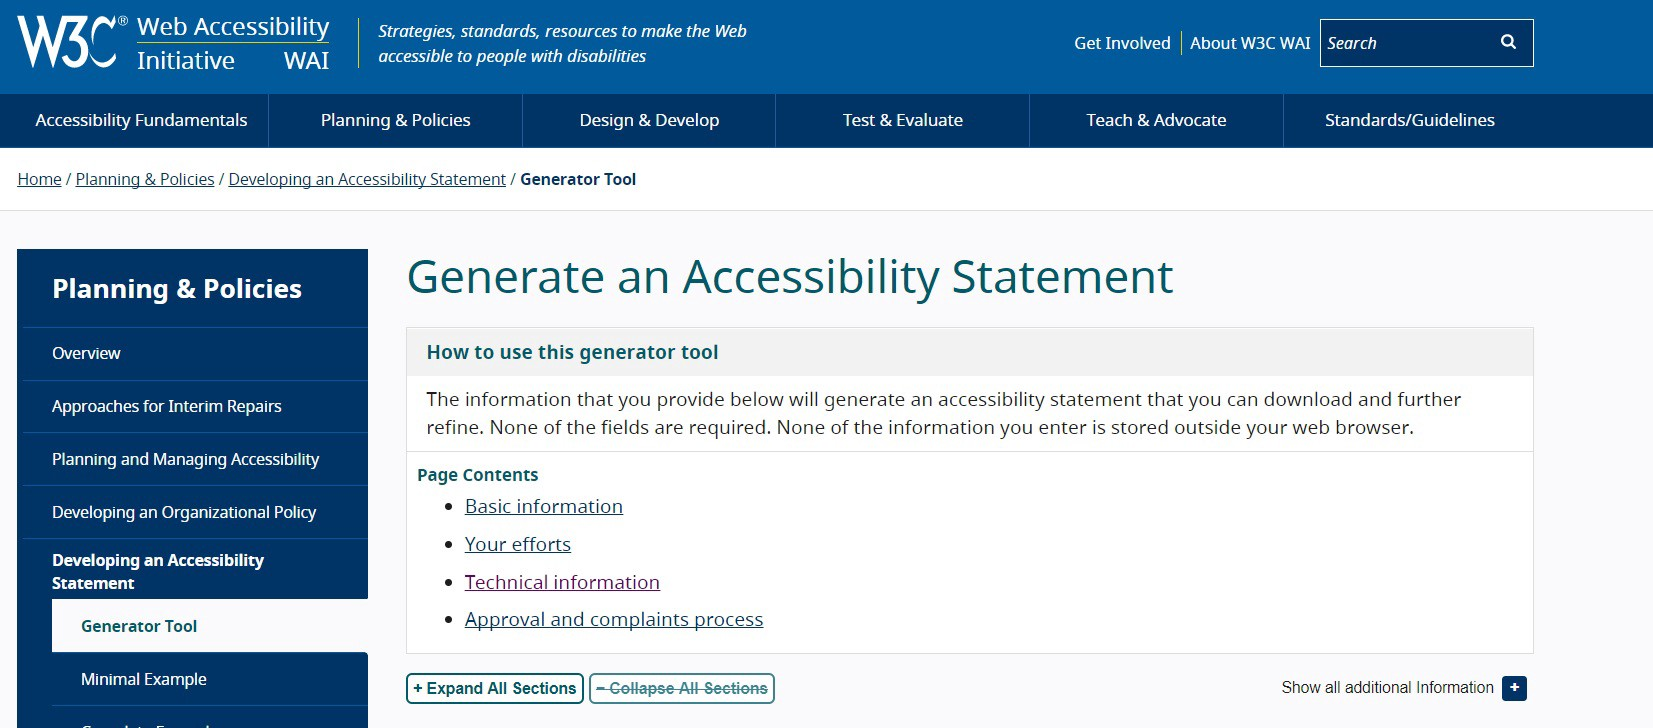 W3C accessibility statement generator screenshot from https://www.w3.org/WAI/planning/statements/generator/#create